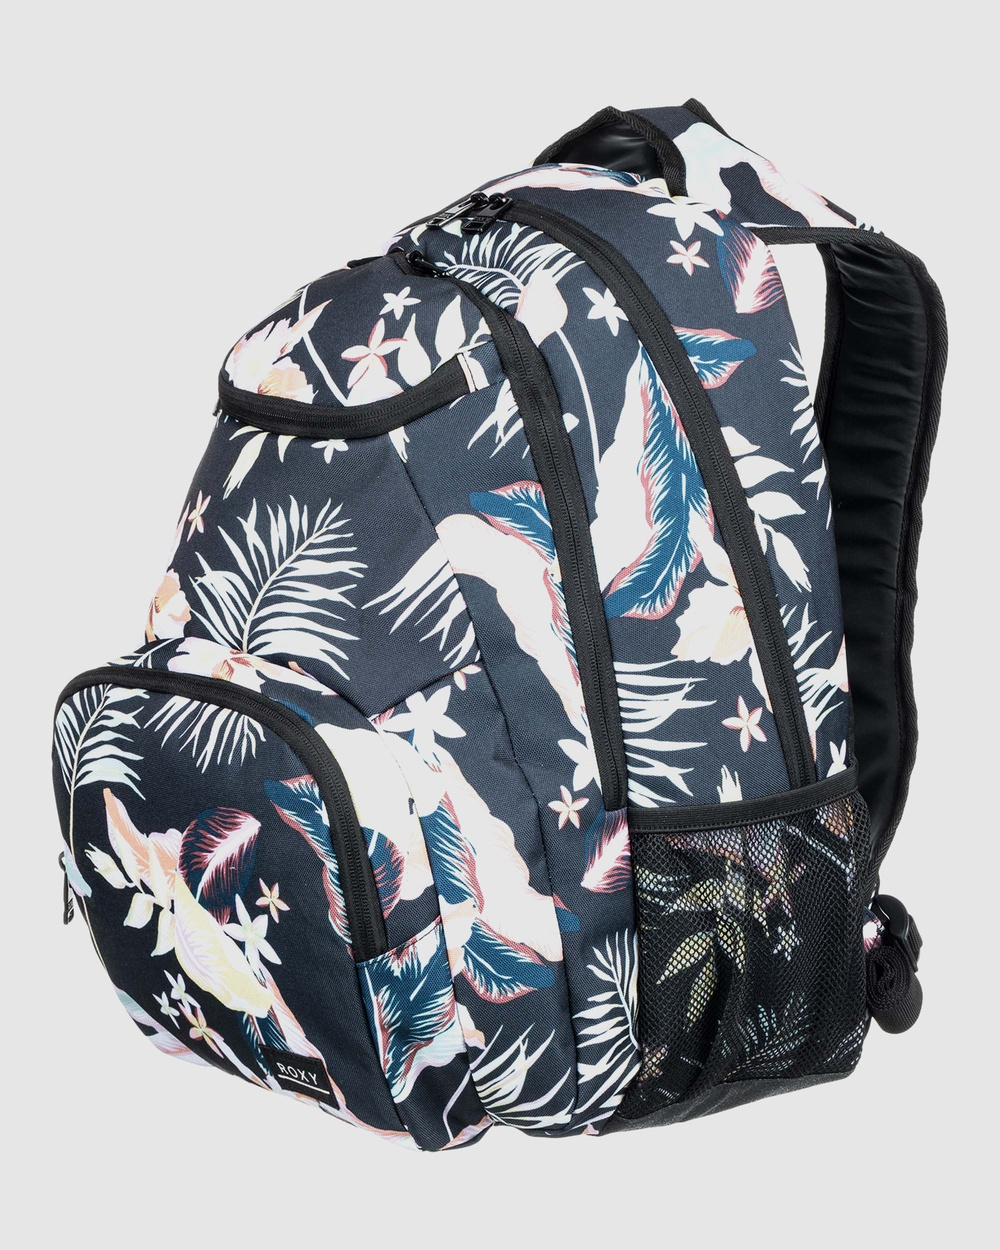 Roxy Shadow Swell 24L Medium Backpack Backpacks ANTHRACITE PRASLIN S